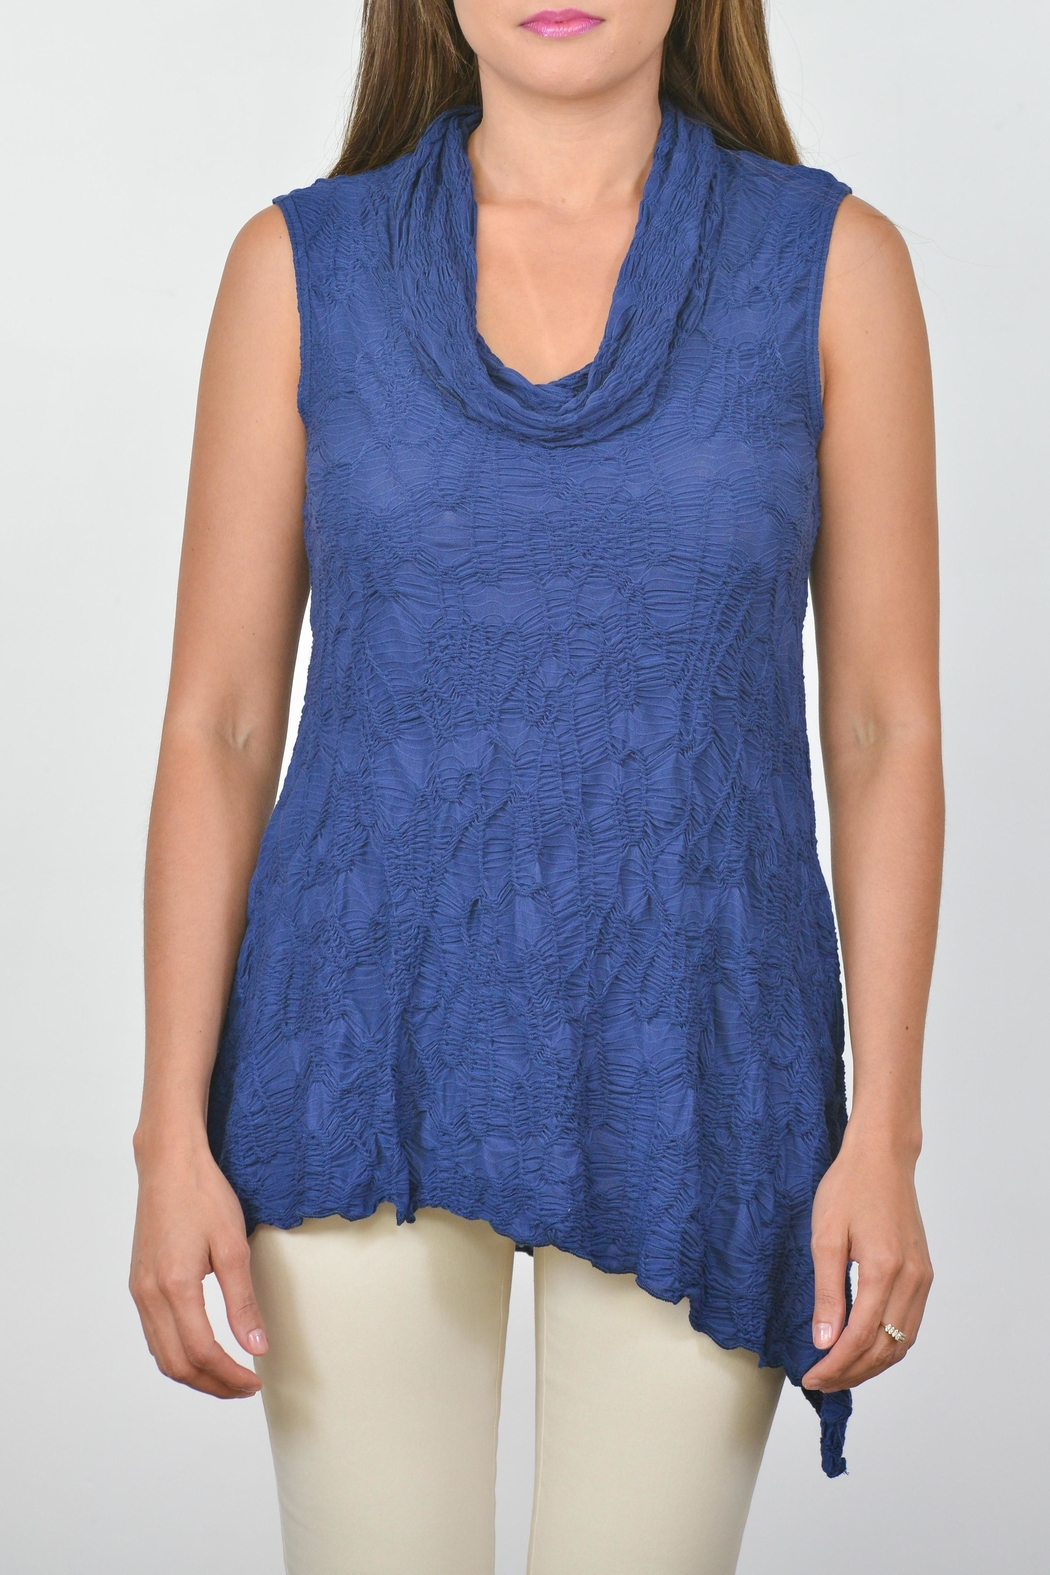 Sno Skins Cowl Slit Tunic - Front Cropped Image